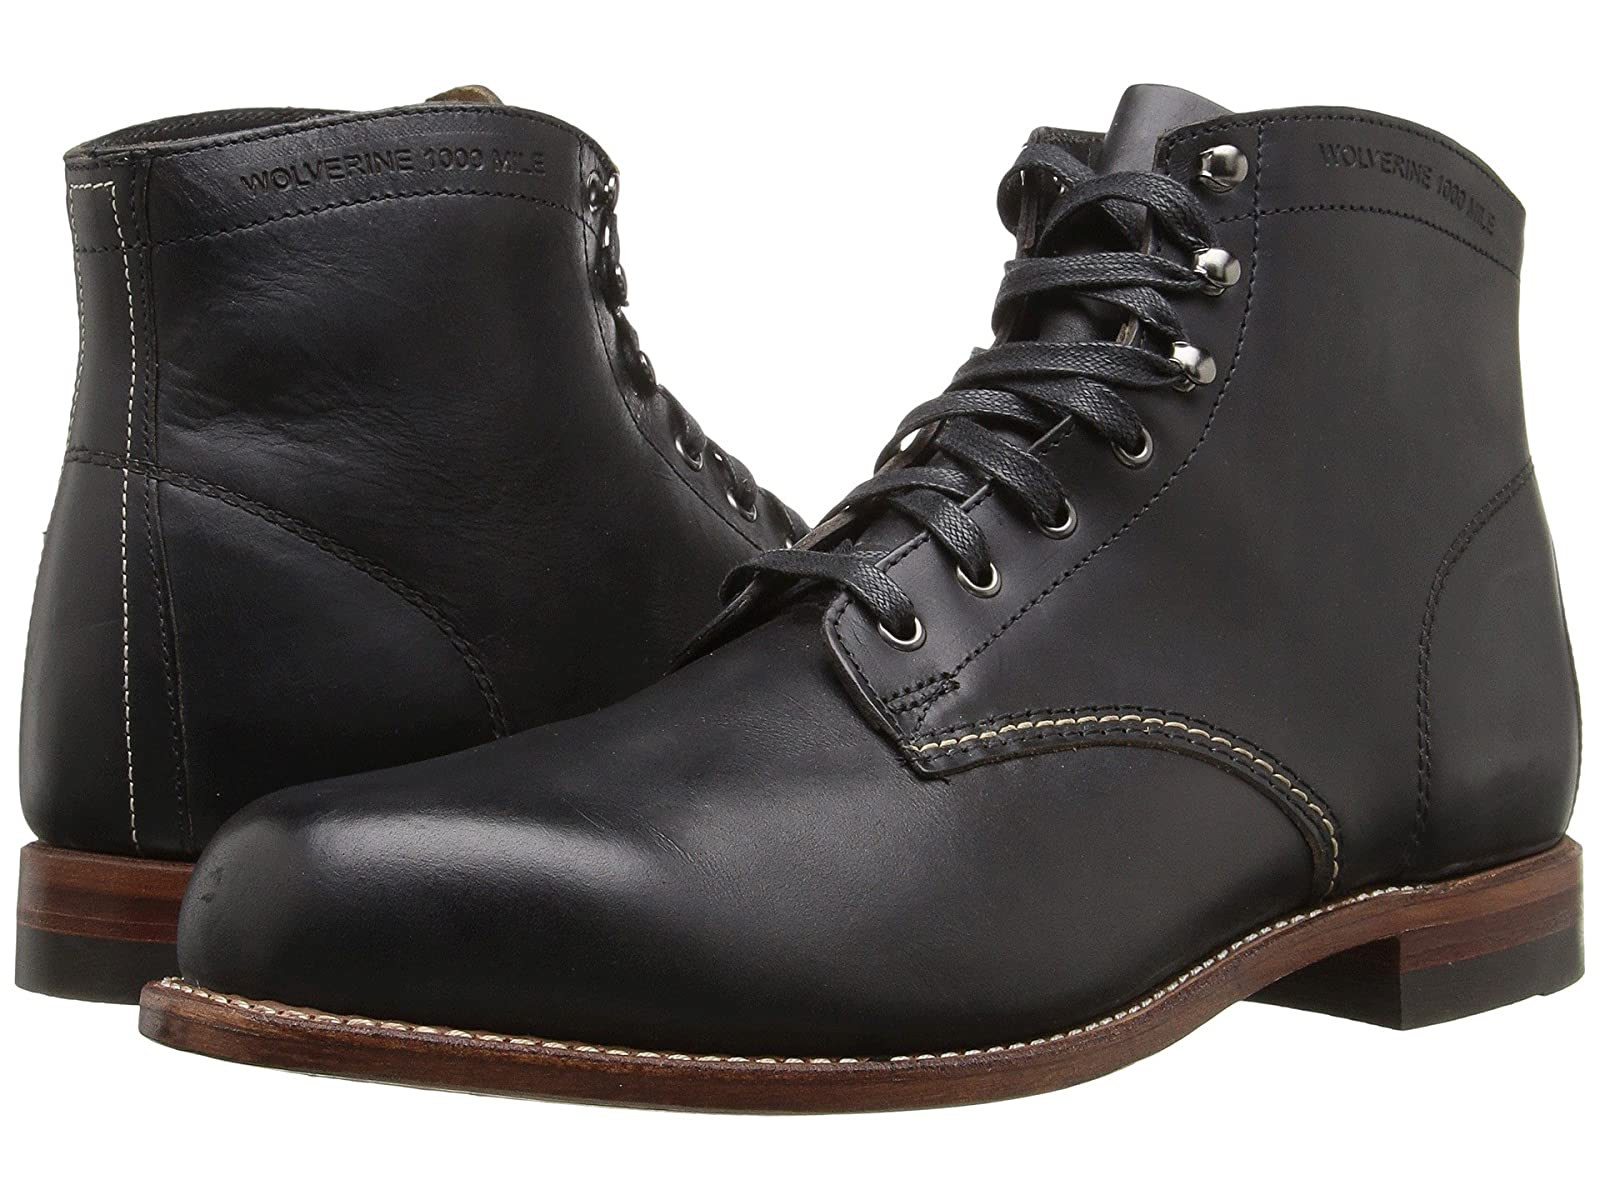 "Wolverine Original 1000 Mile 6"" BootEconomical and quality shoes"